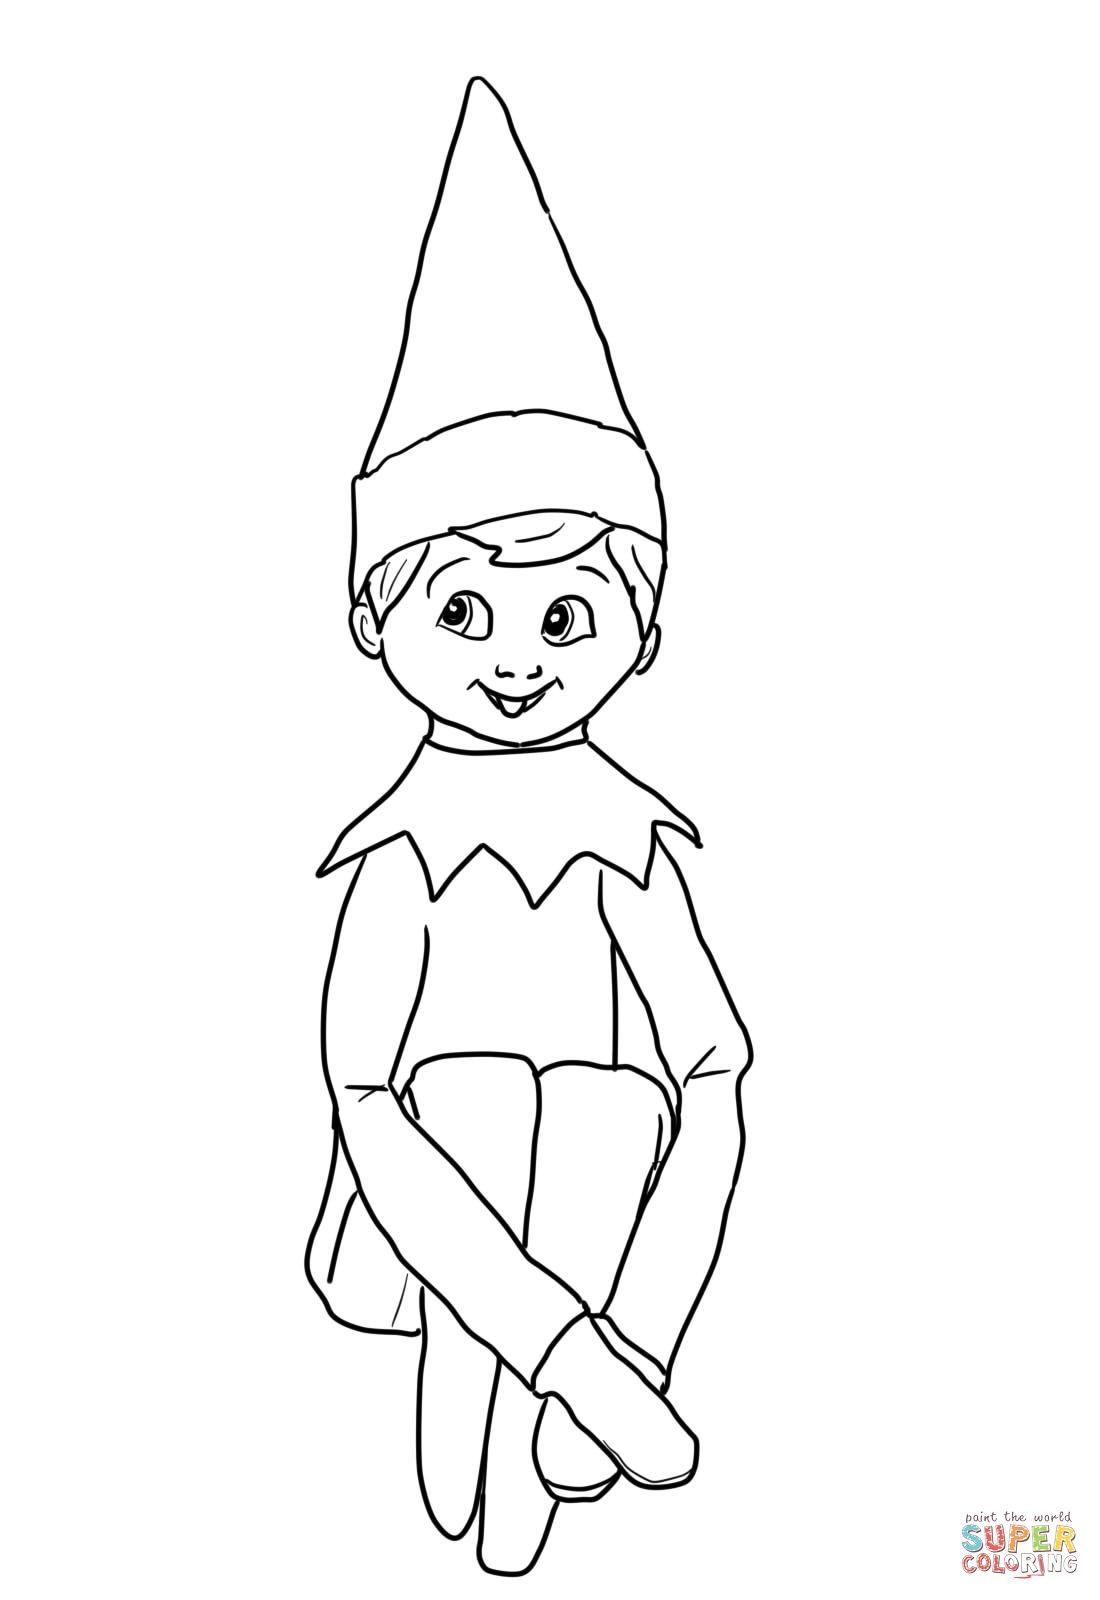 Santa Dog Coloring Pages With Girl Elf On The Shelf You Might Also Be Interested